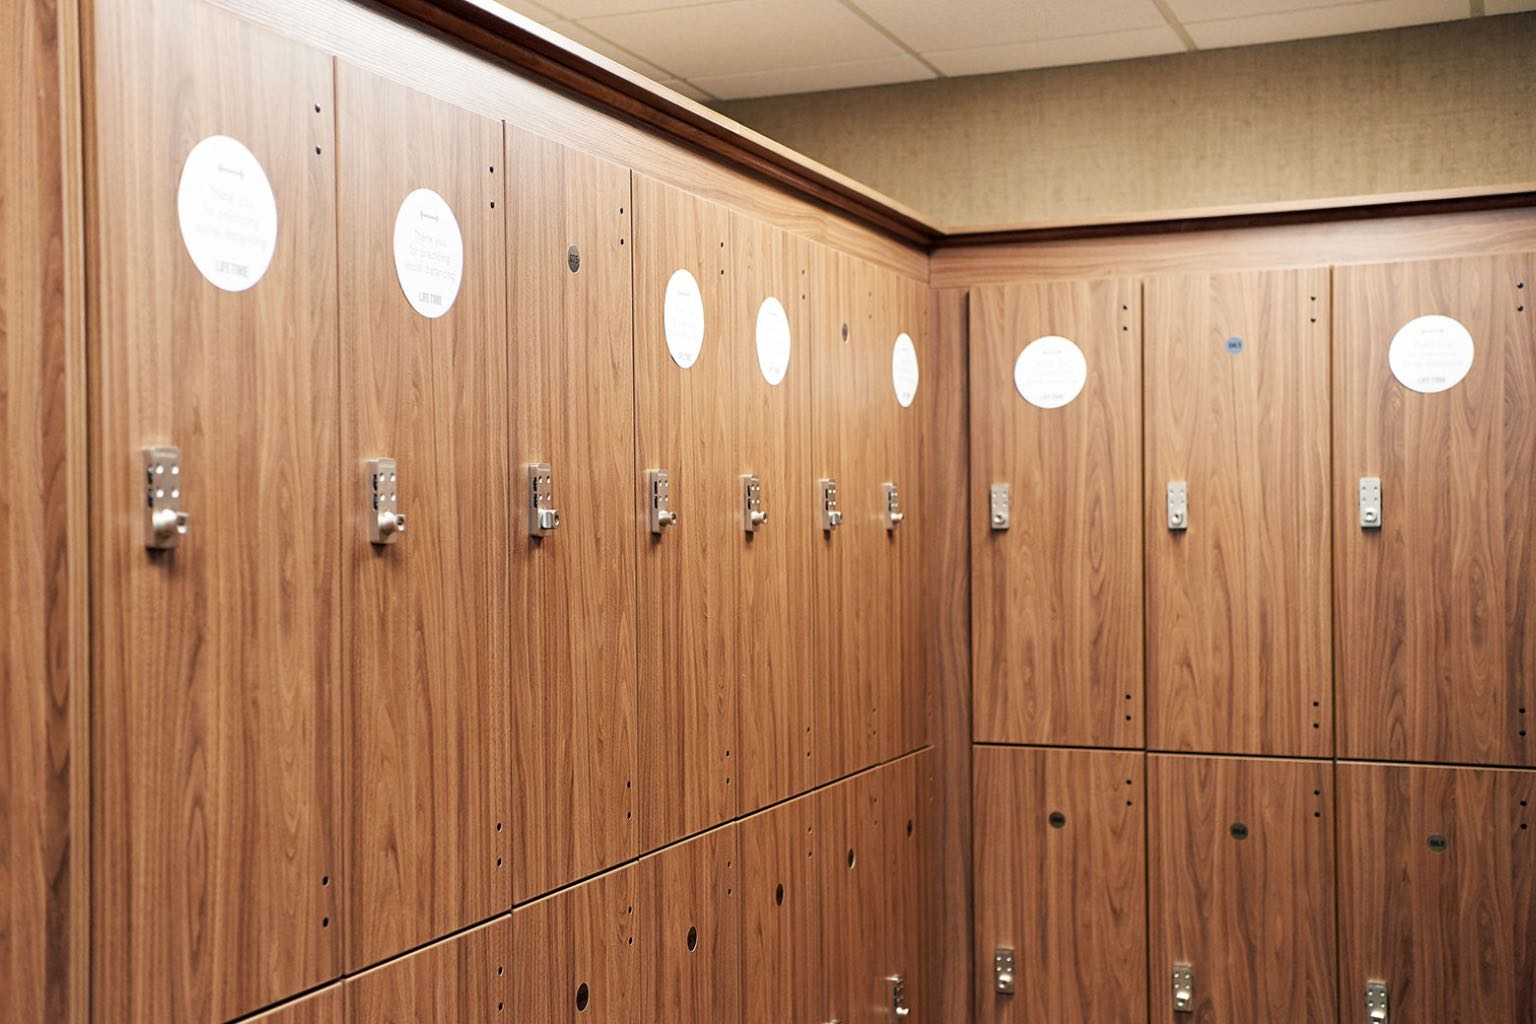 Lockers with social distance stickers on them.